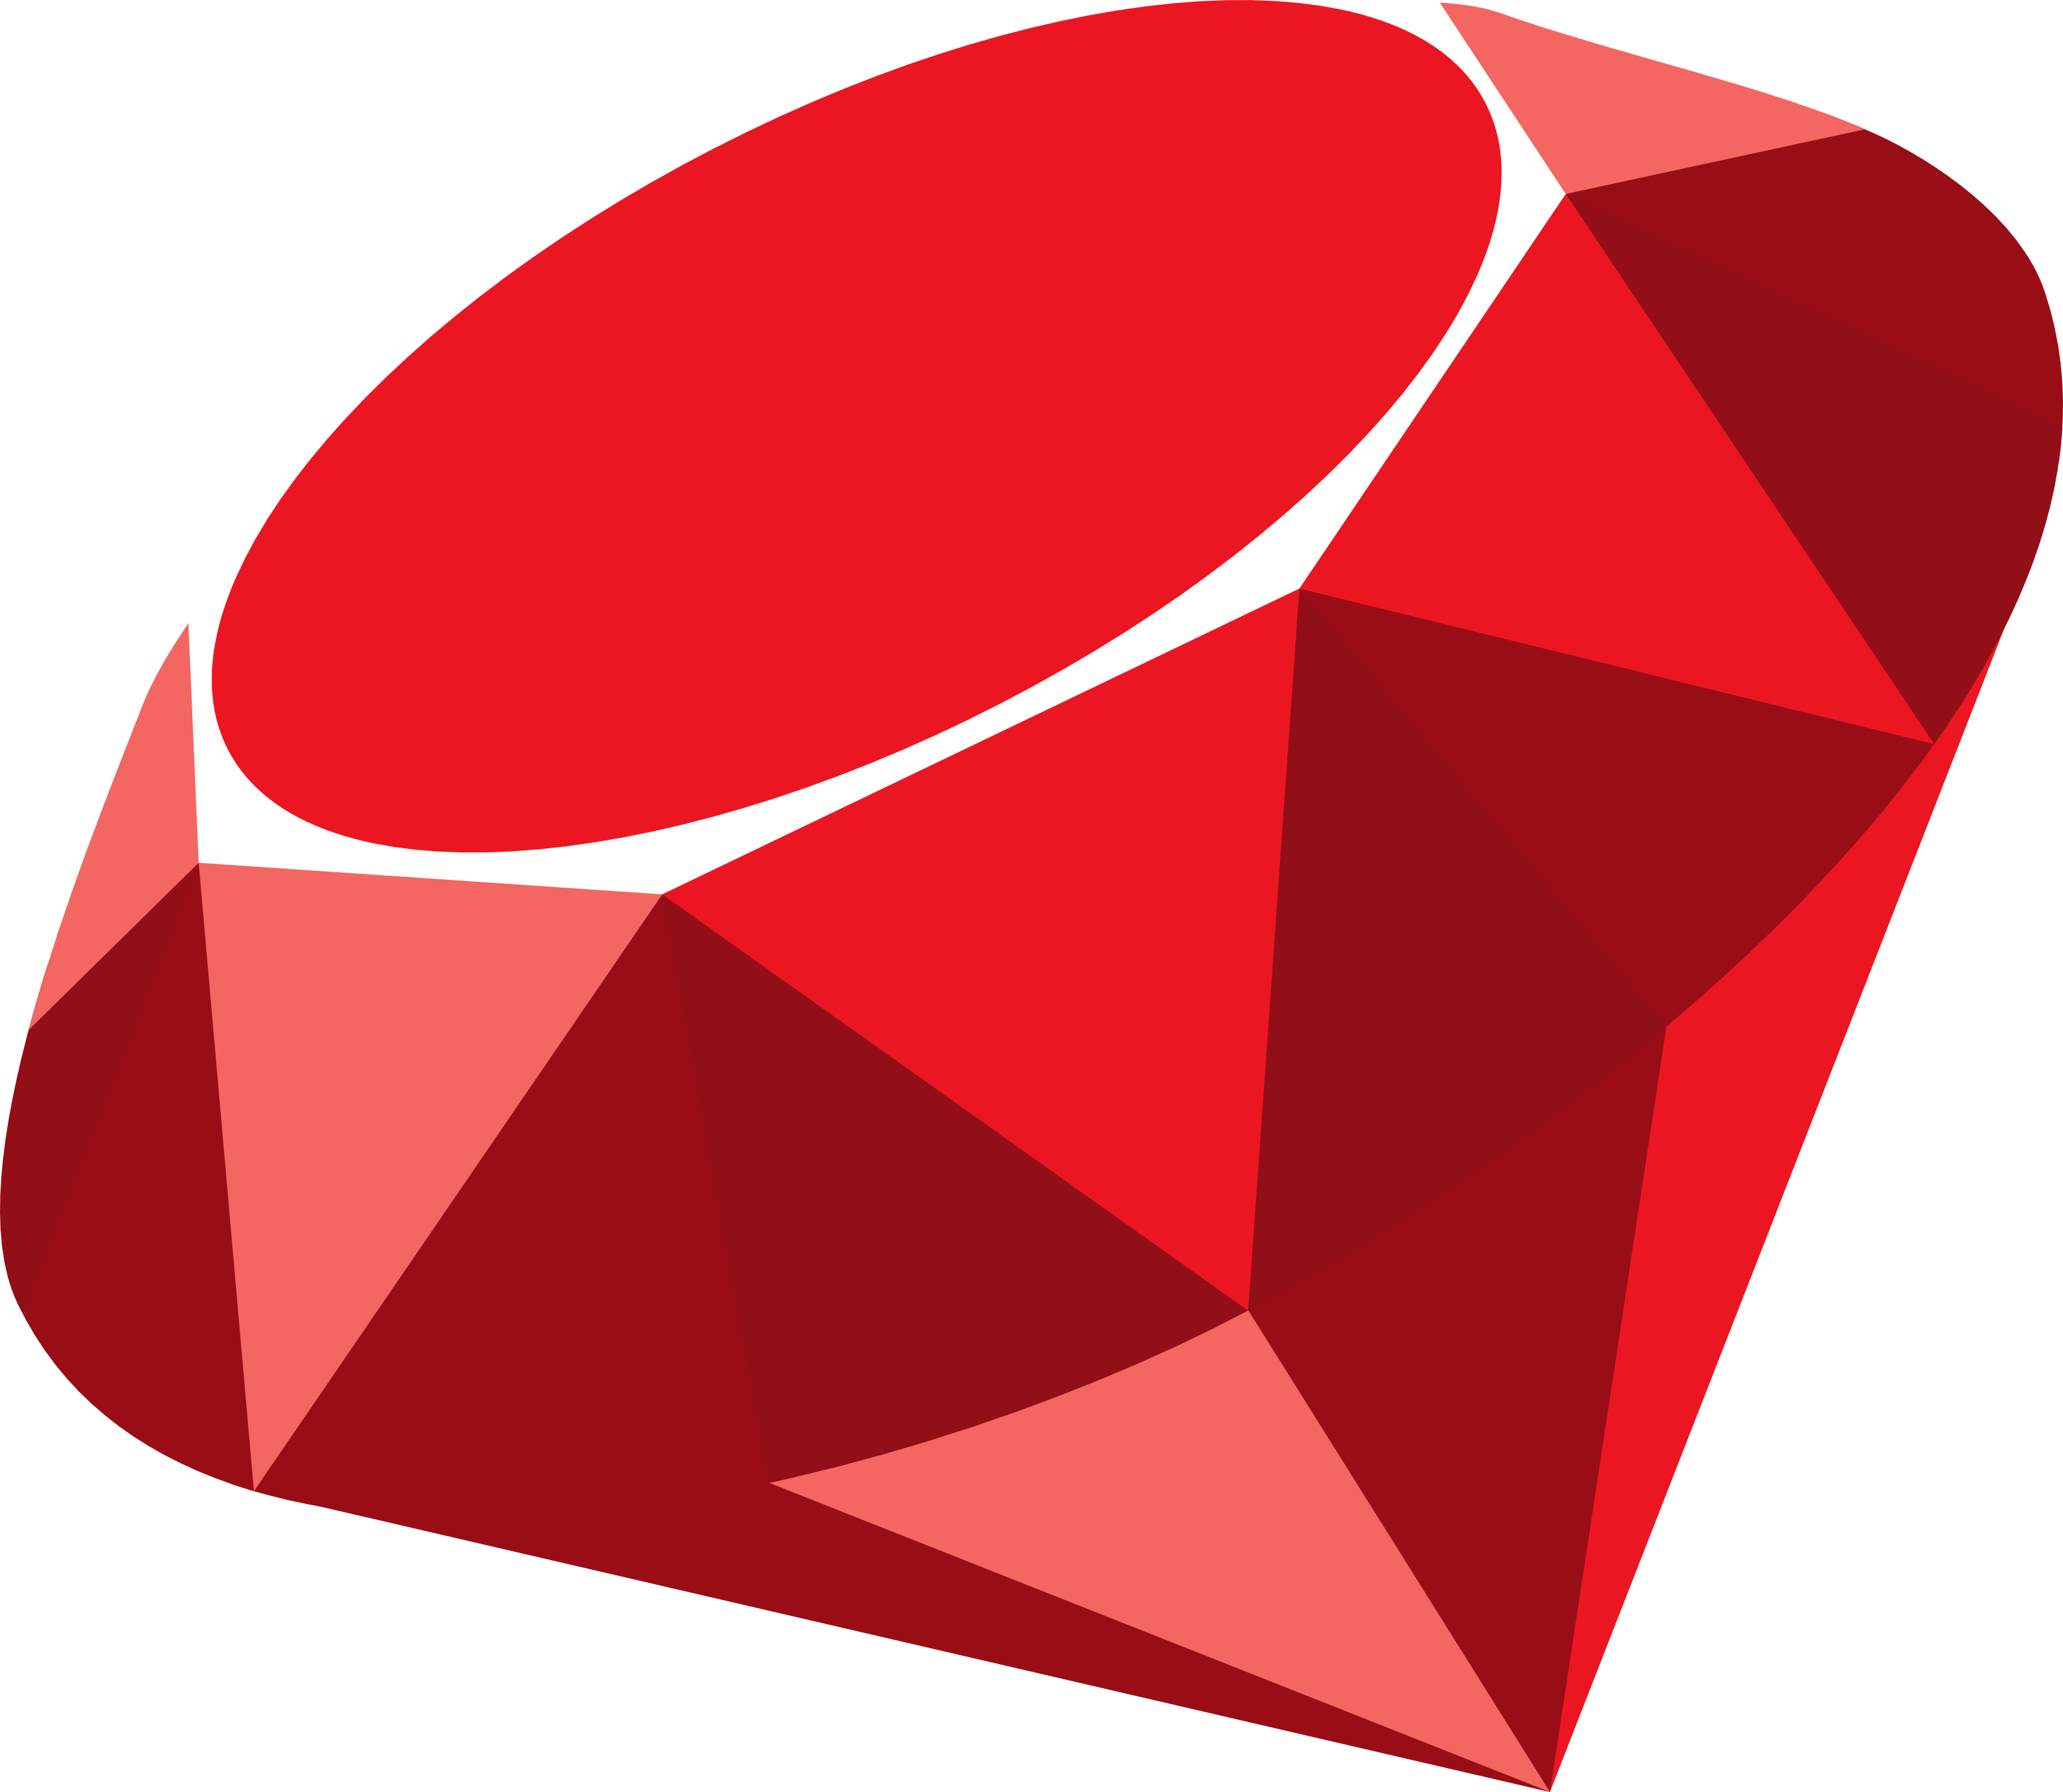 Ruby stone png image. Gem clipart red gem